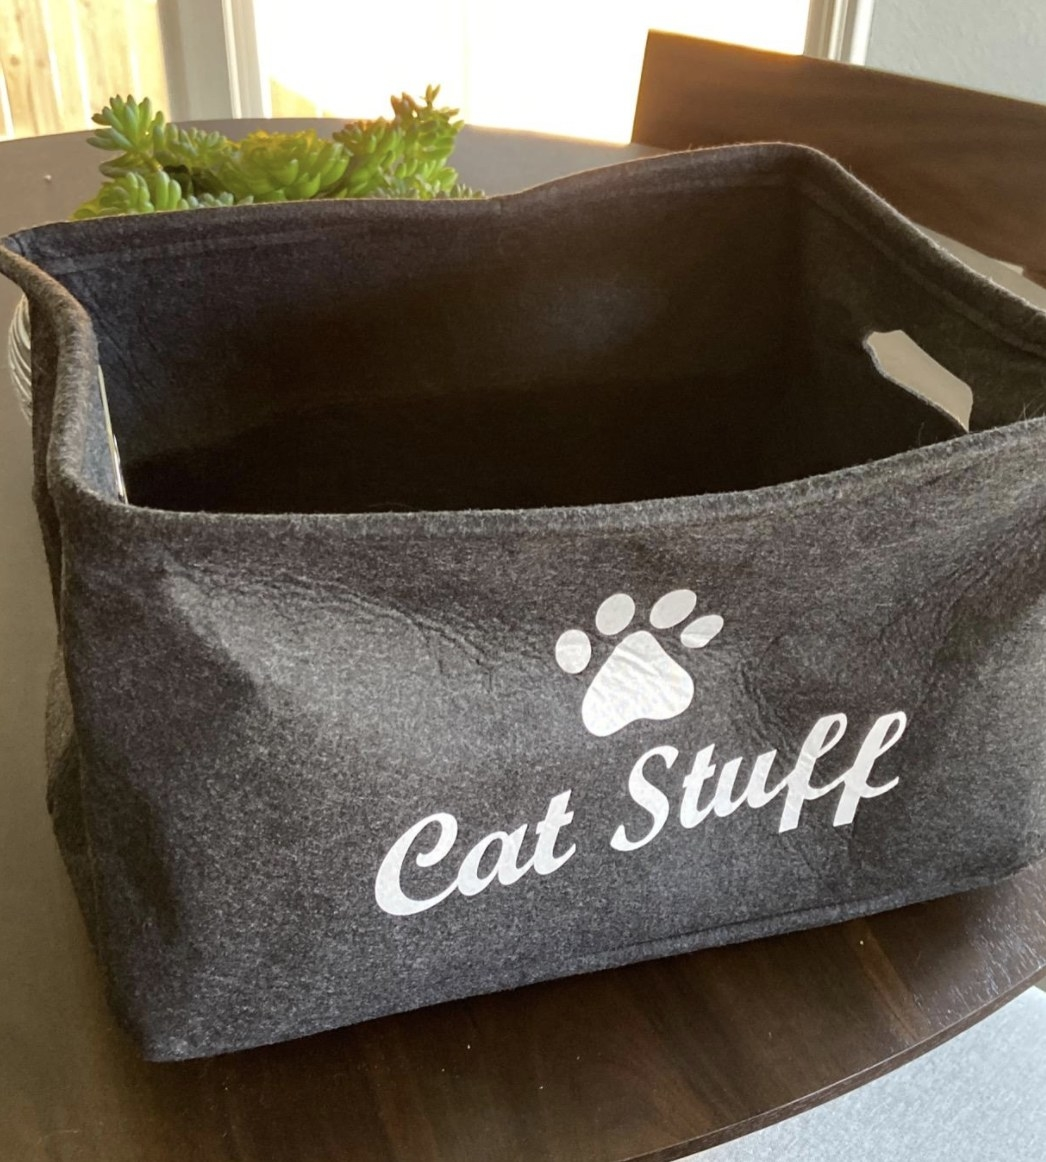 """a storage bin with the words """"cat stuff"""" written on the outside of a bin under a paw print design"""